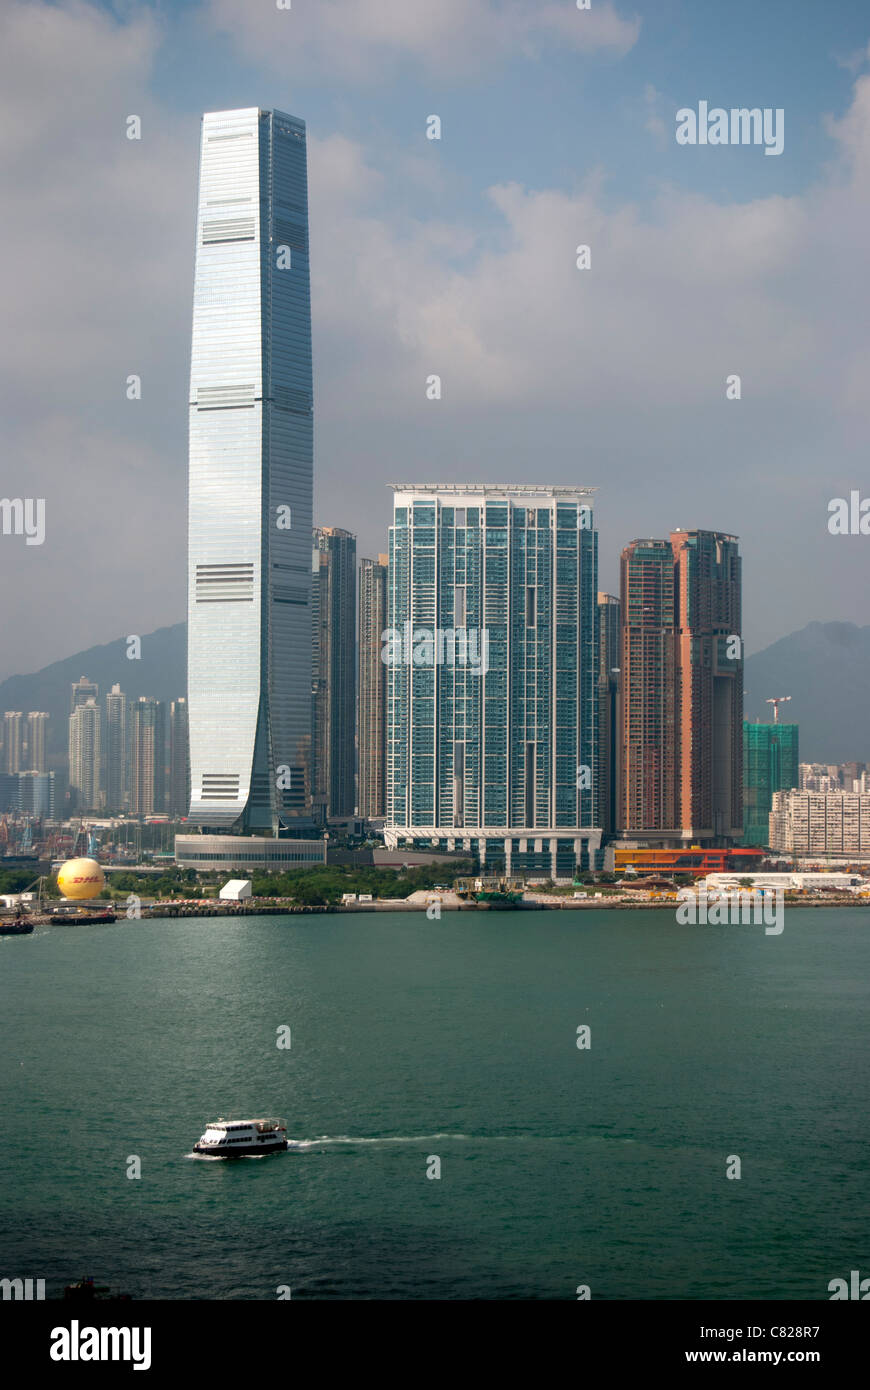 Kowloon and Victoria Harbour, Hong Kong - Stock Image